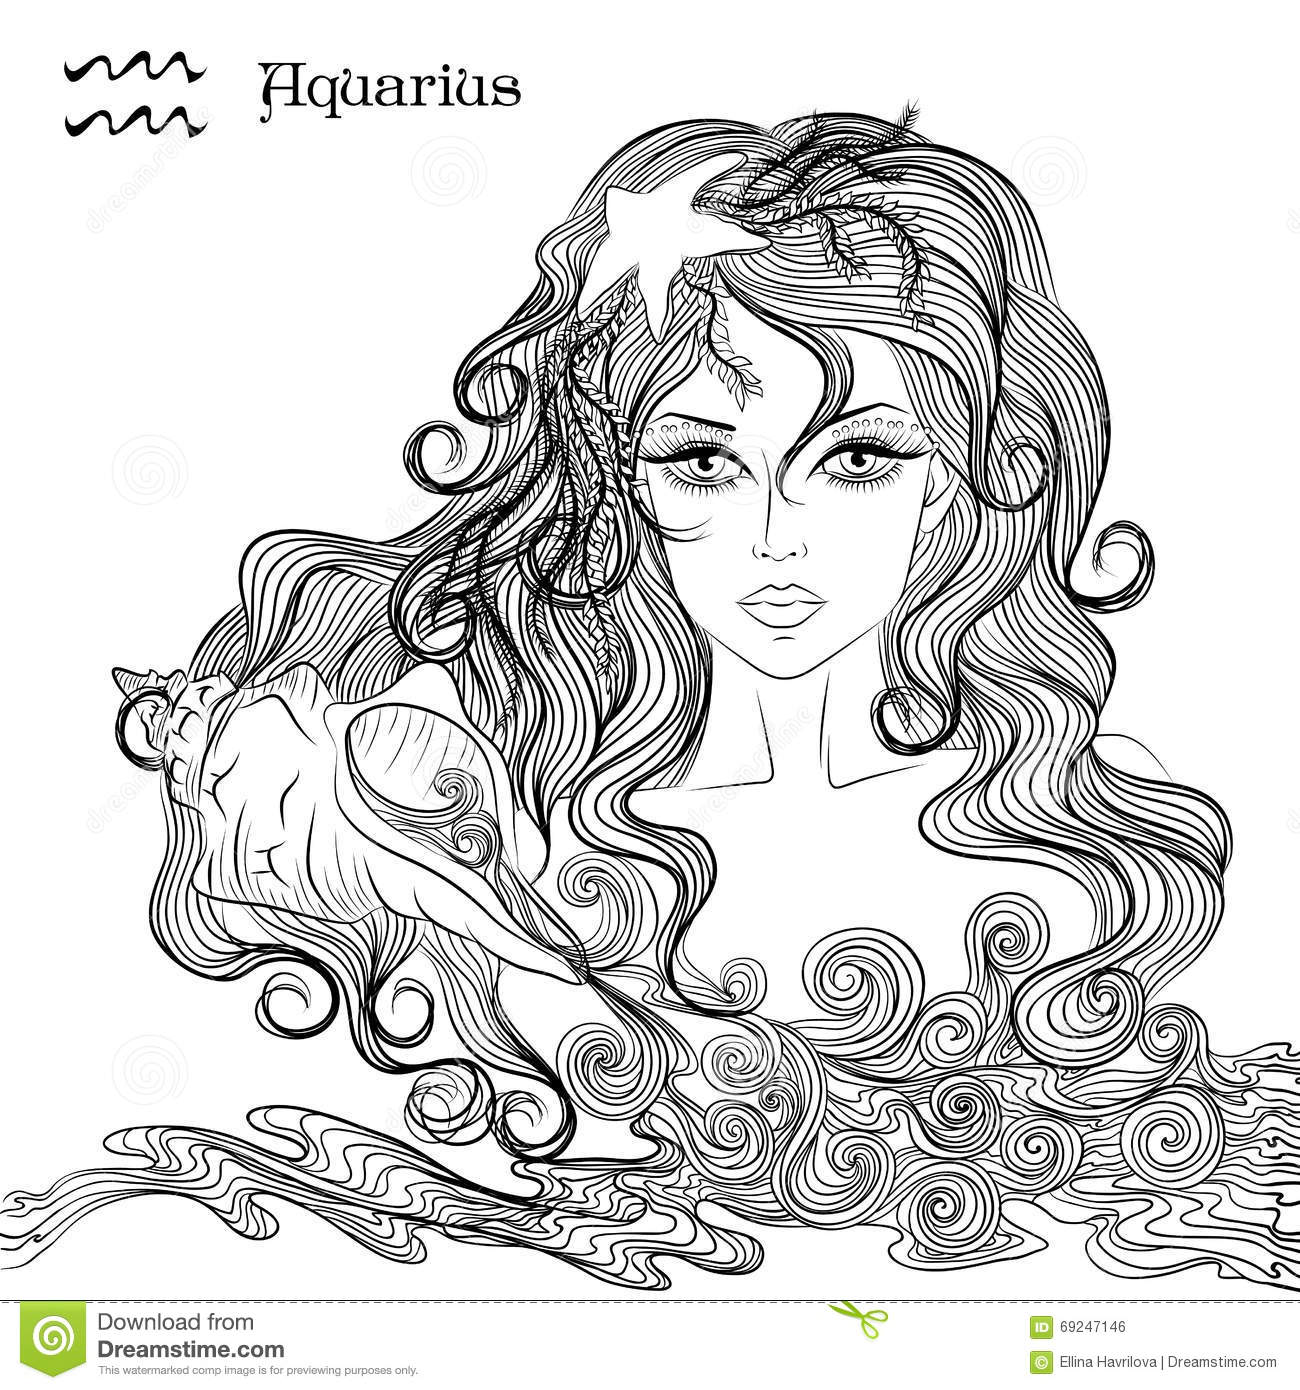 Aquarius (Astrology) coloring #13, Download drawings